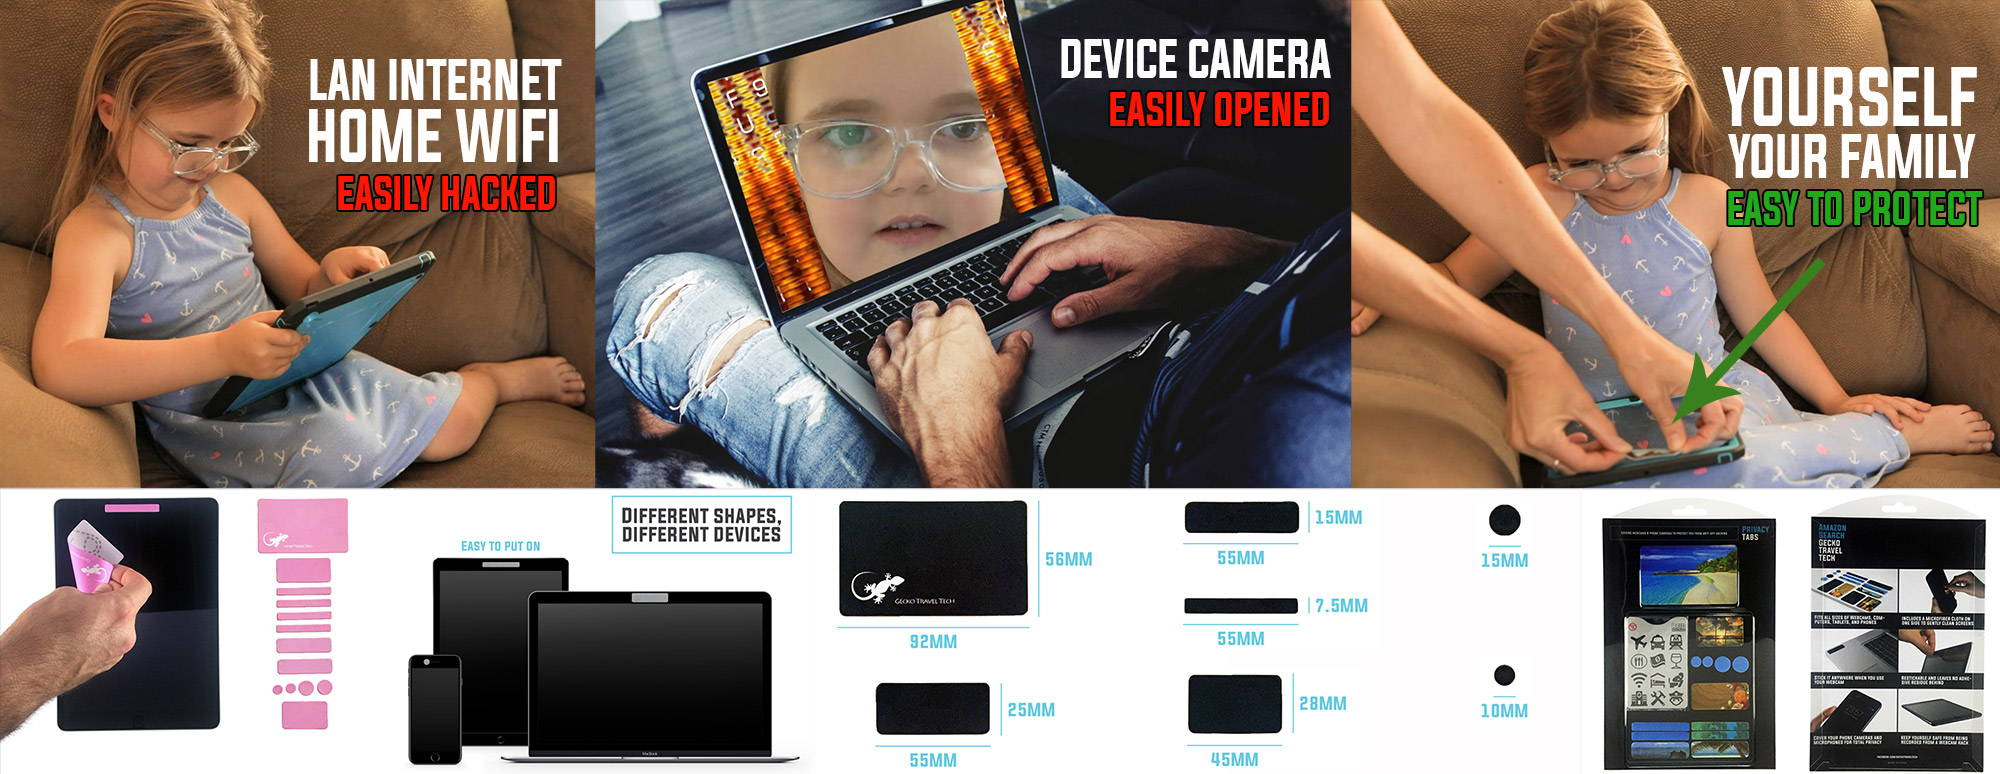 webcam cover can protect you from being spy and hacker, easy stick on webcam covers